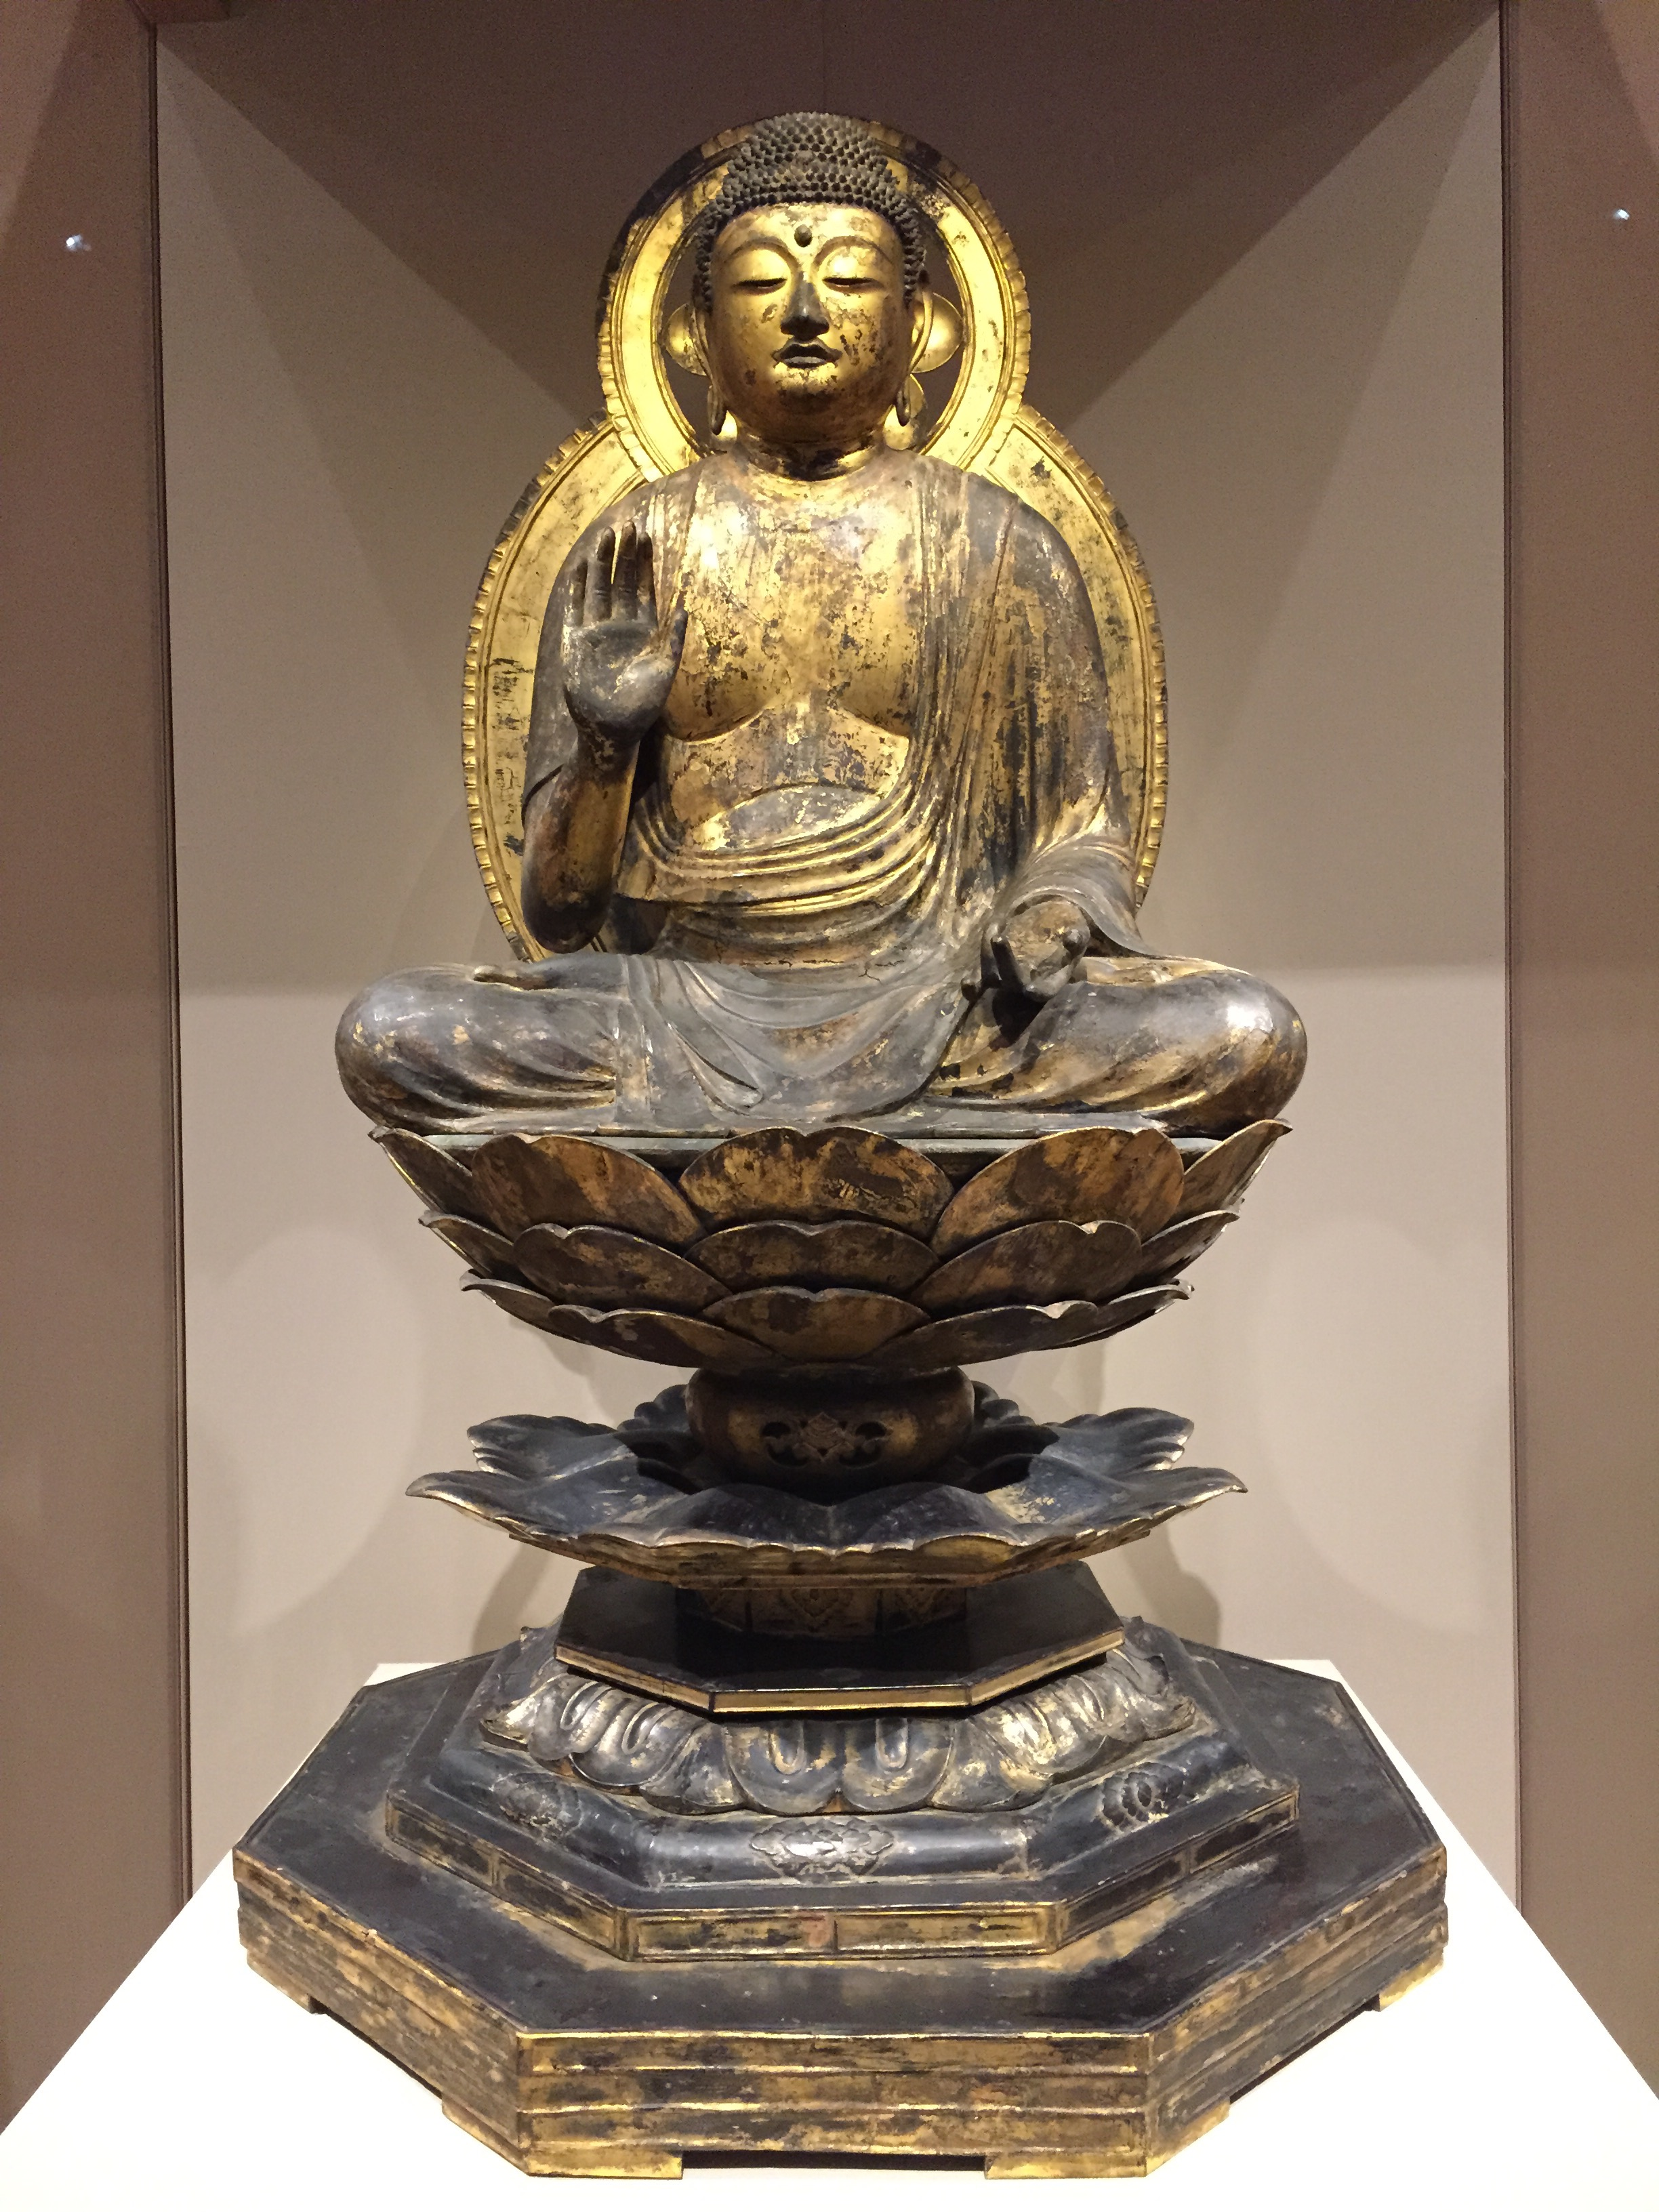 Yakushi-Nyorai Buddha,   1100s  Gilded wood  Japan, late Heian period (about 900-1185)